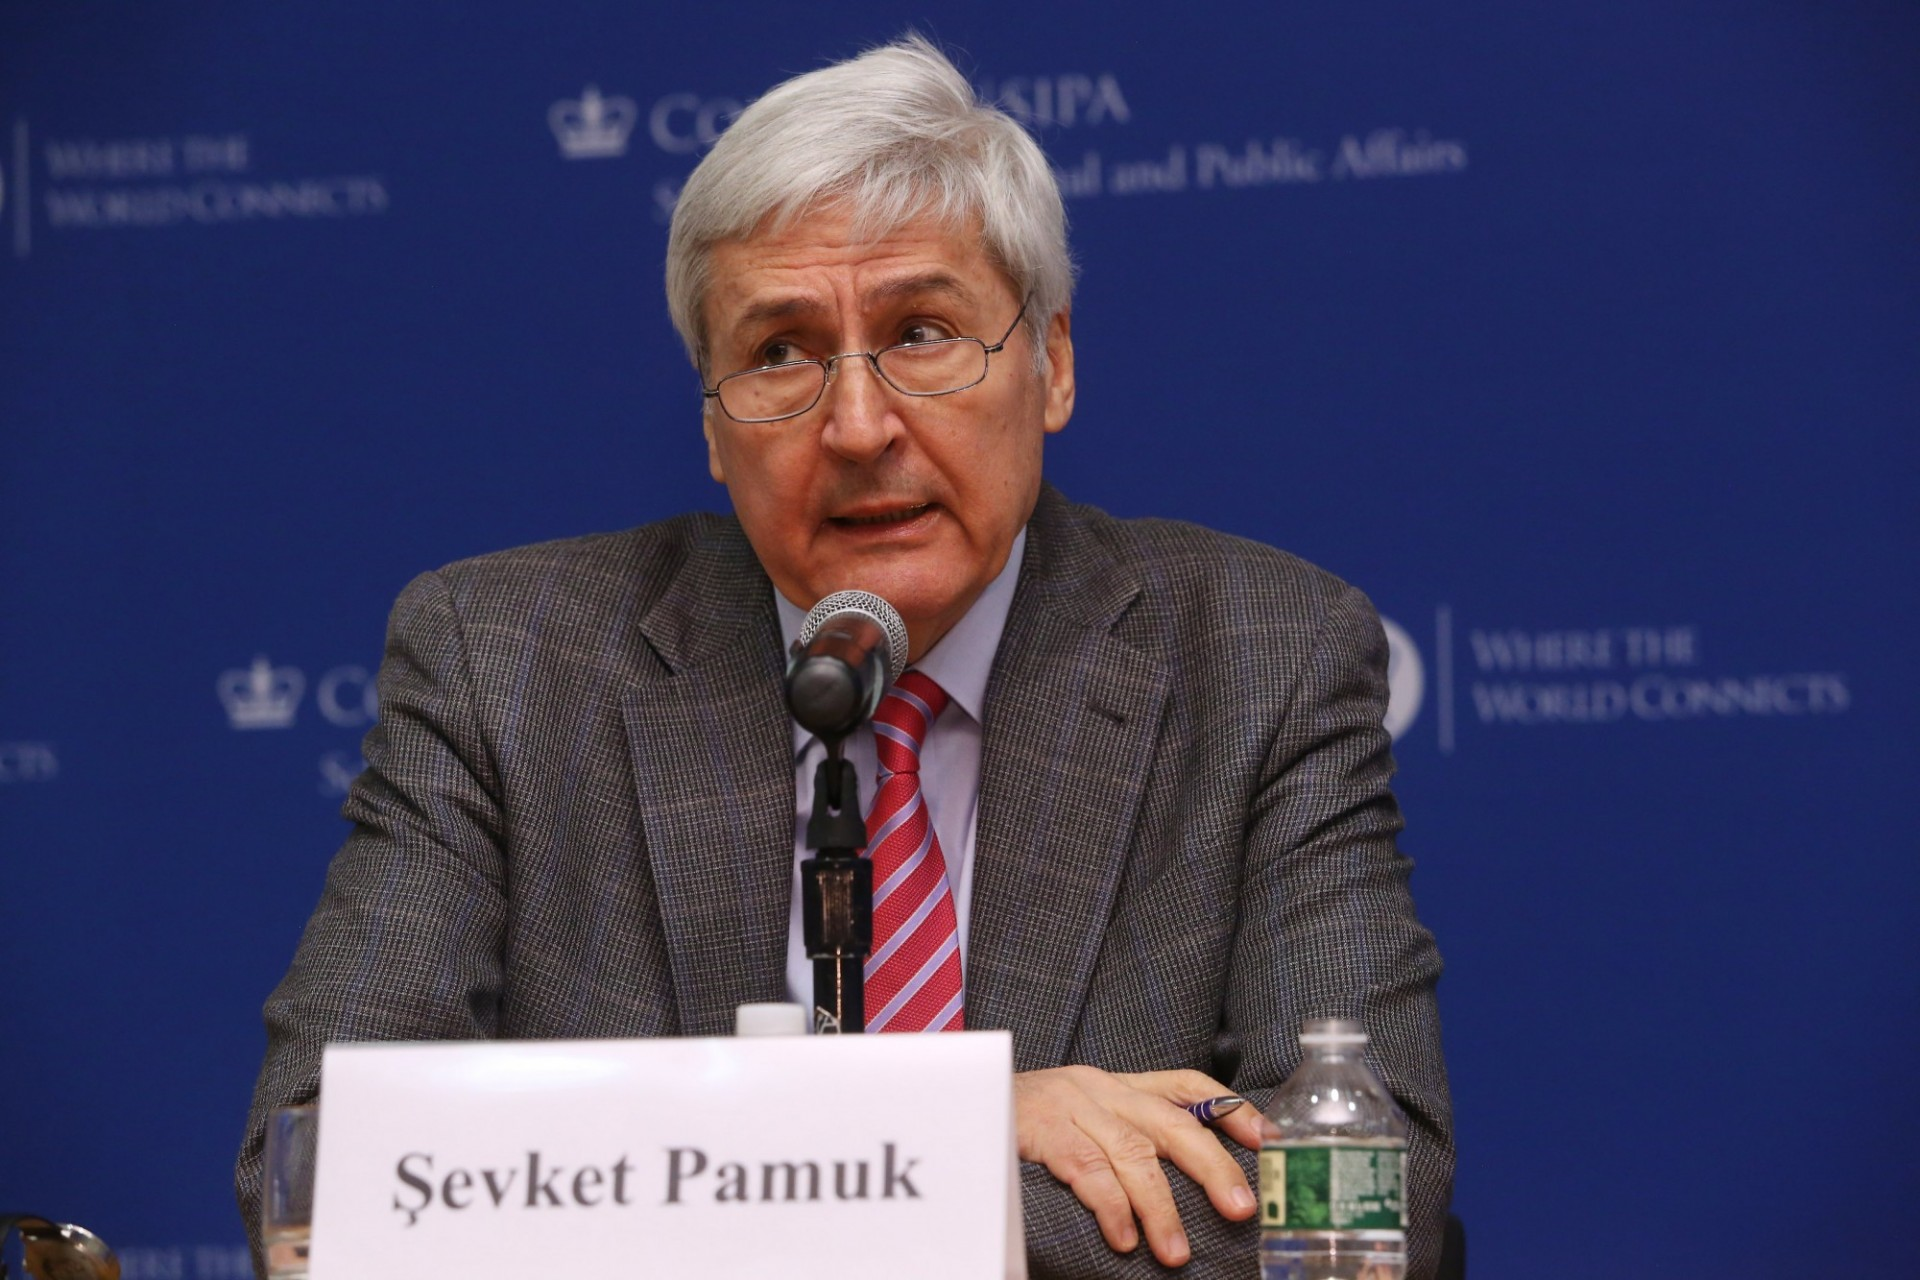 Sevket Pamuk answering questions for the Inaugural Sakip Sabanci Lecture at Columbia University